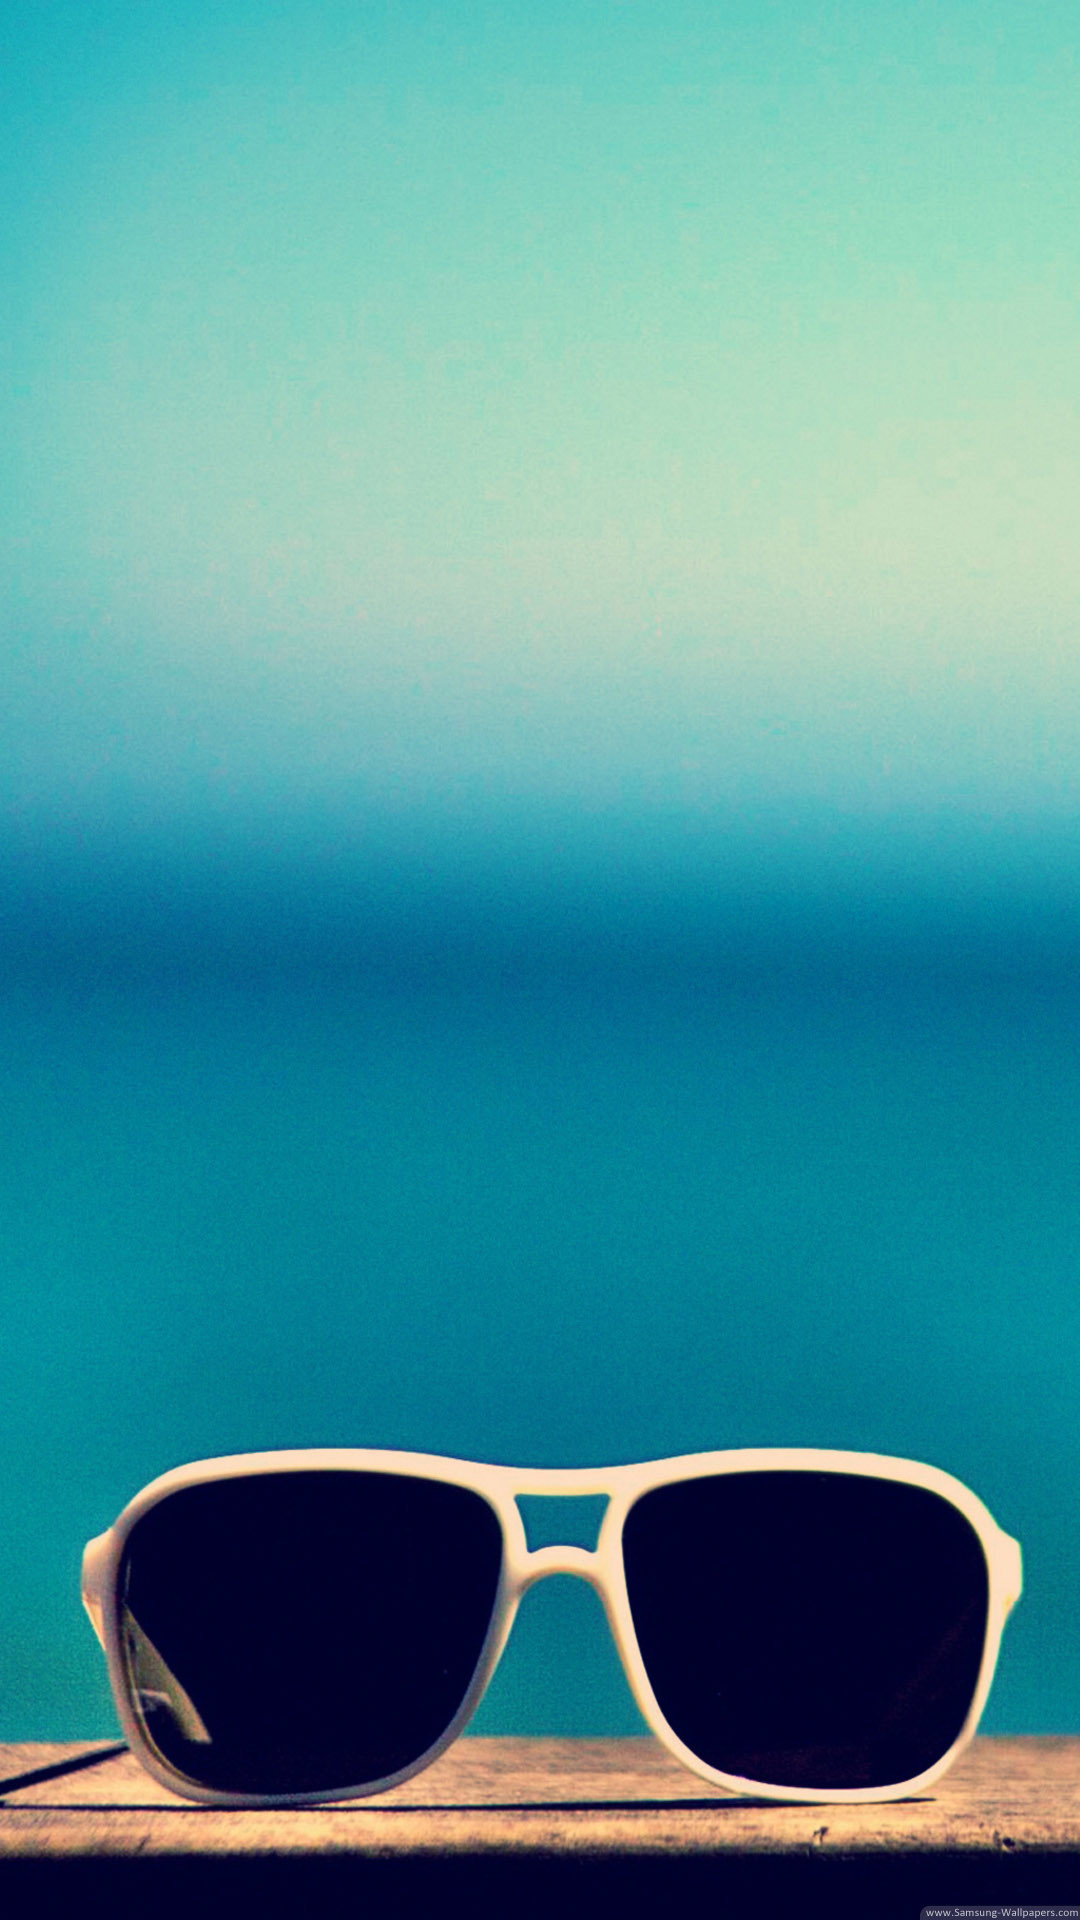 Click download Wallpaper for Iphone 6 Plus